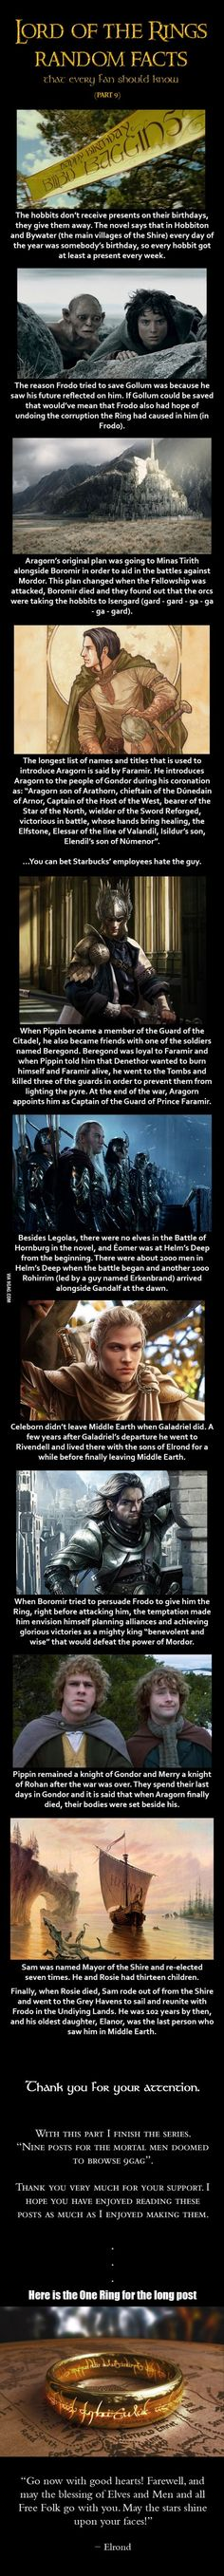 Here are some Lord of the Rings random facts (Part 9):